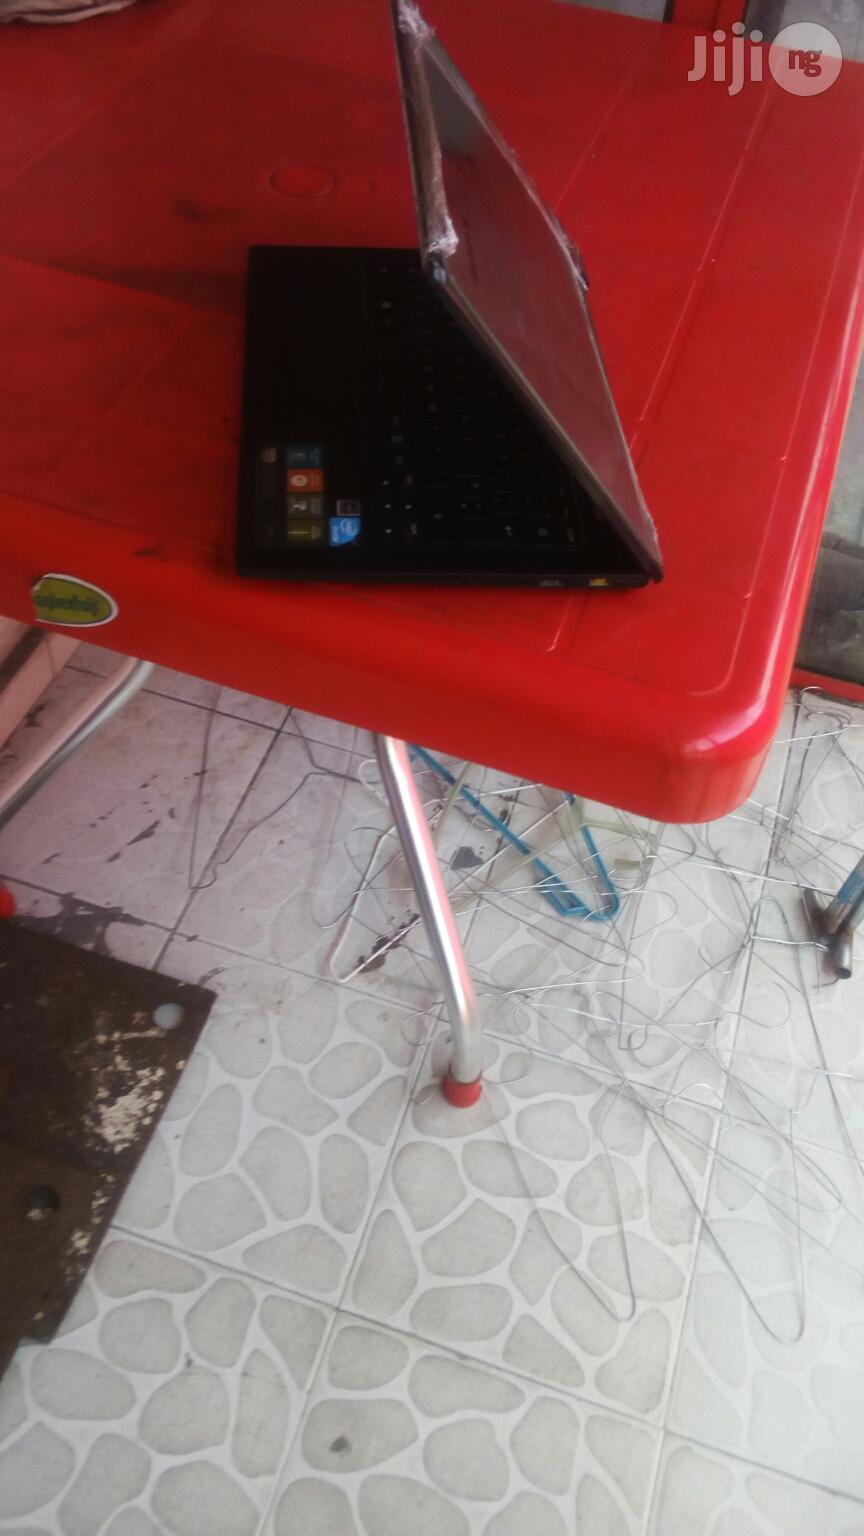 Laptop Lenovo Z40 2GB Intel Pentium HDD 250GB   Laptops & Computers for sale in Port-Harcourt, Rivers State, Nigeria